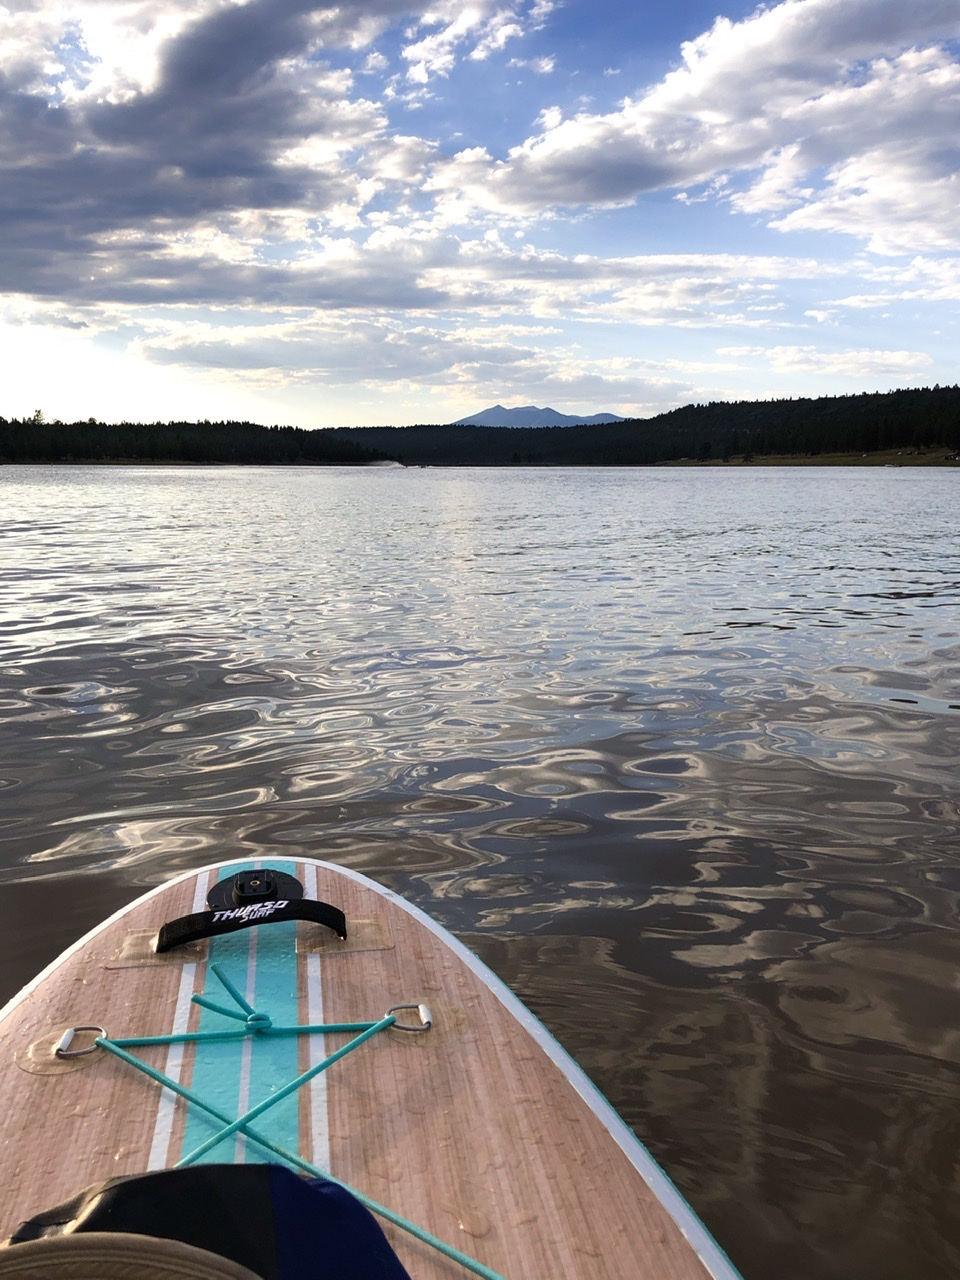 Bow of a paddleboard with low sun reflecting off the water and a tall peak in the far distance